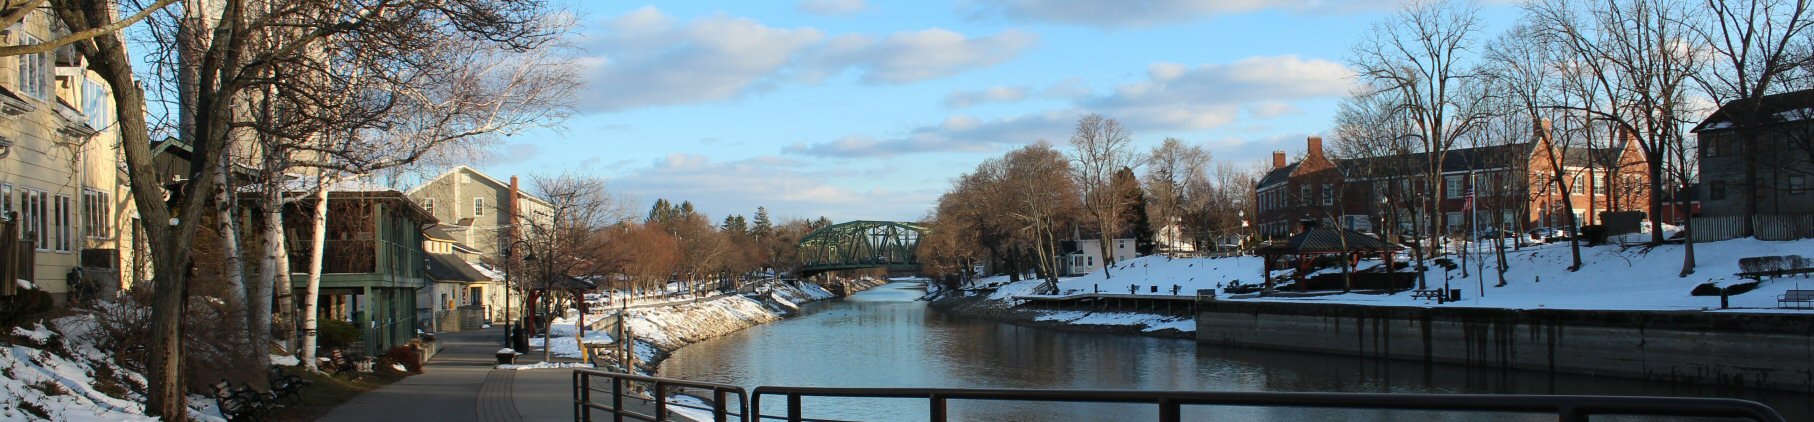 Erie Canal at Pittsford NY